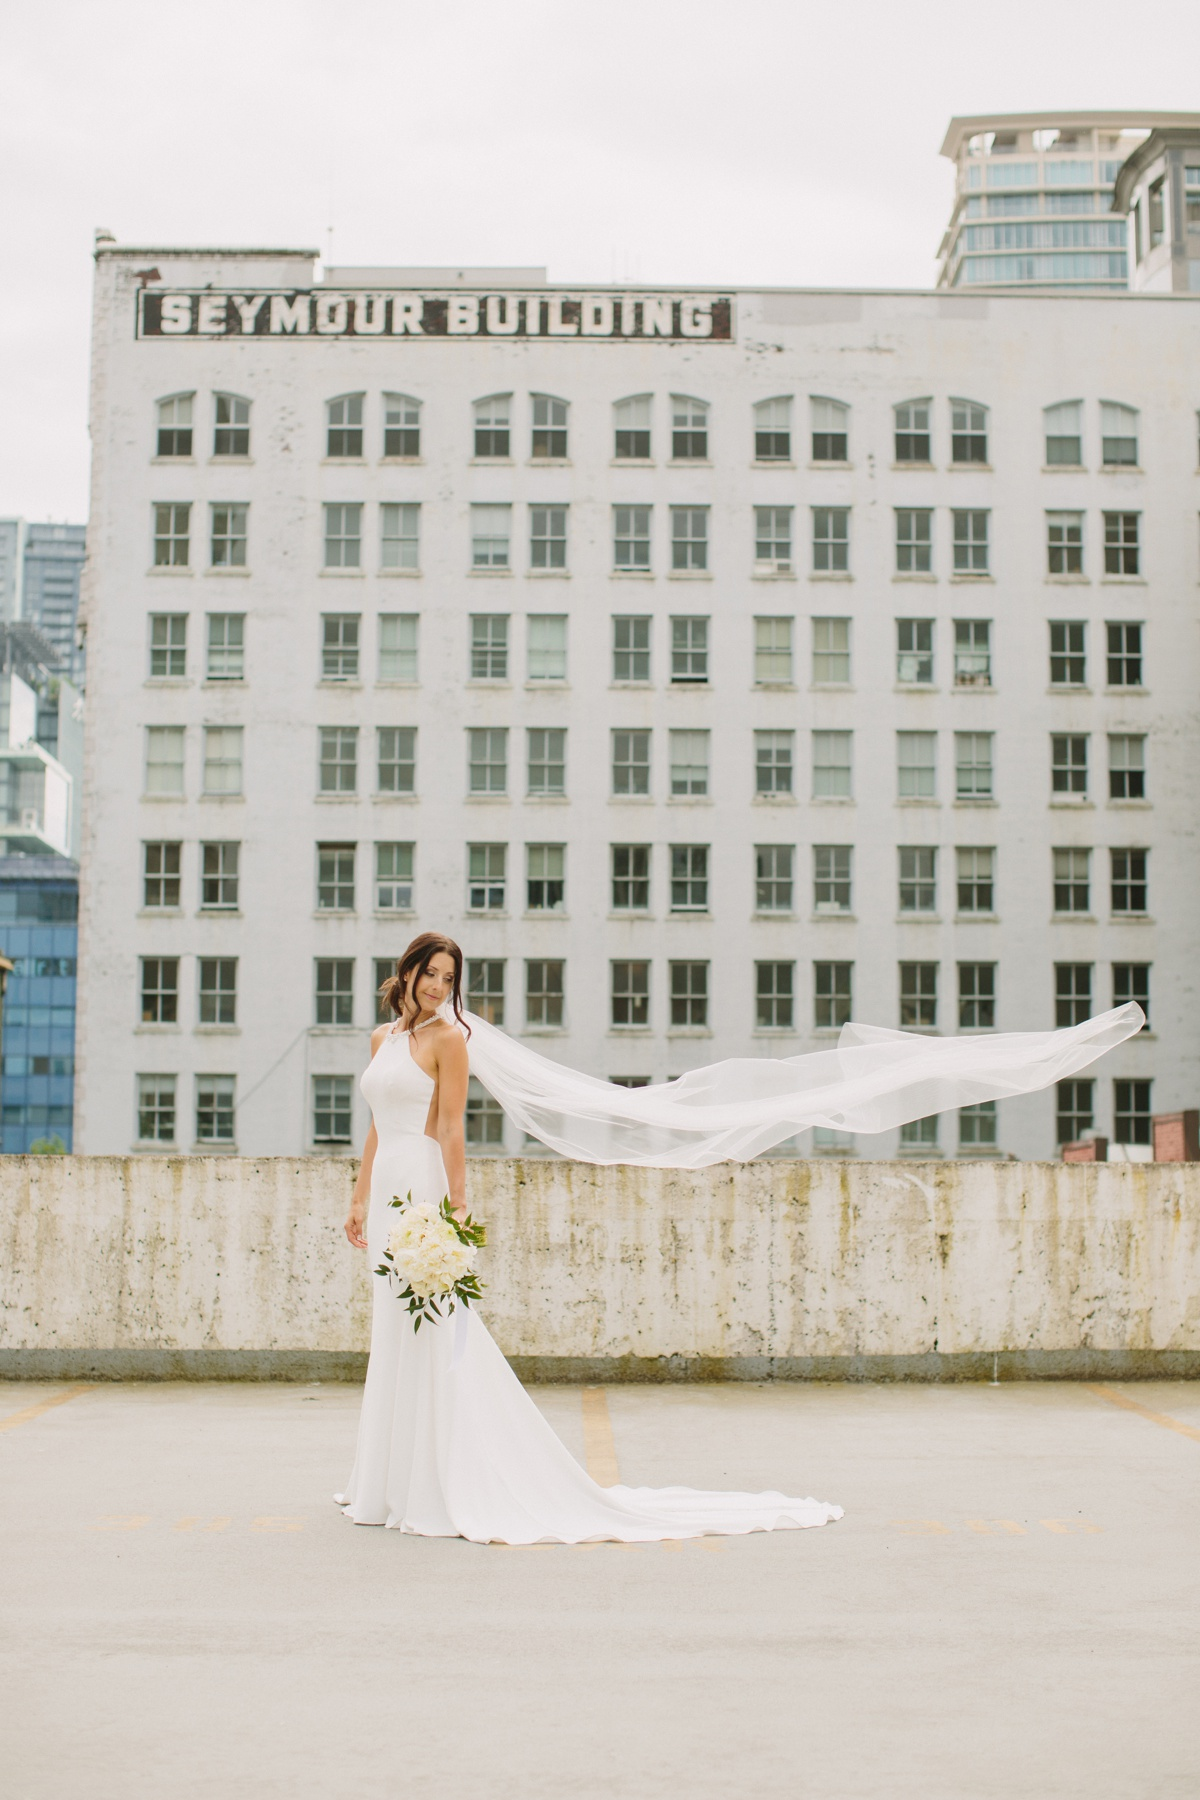 Vancouver bride with Seymour Building